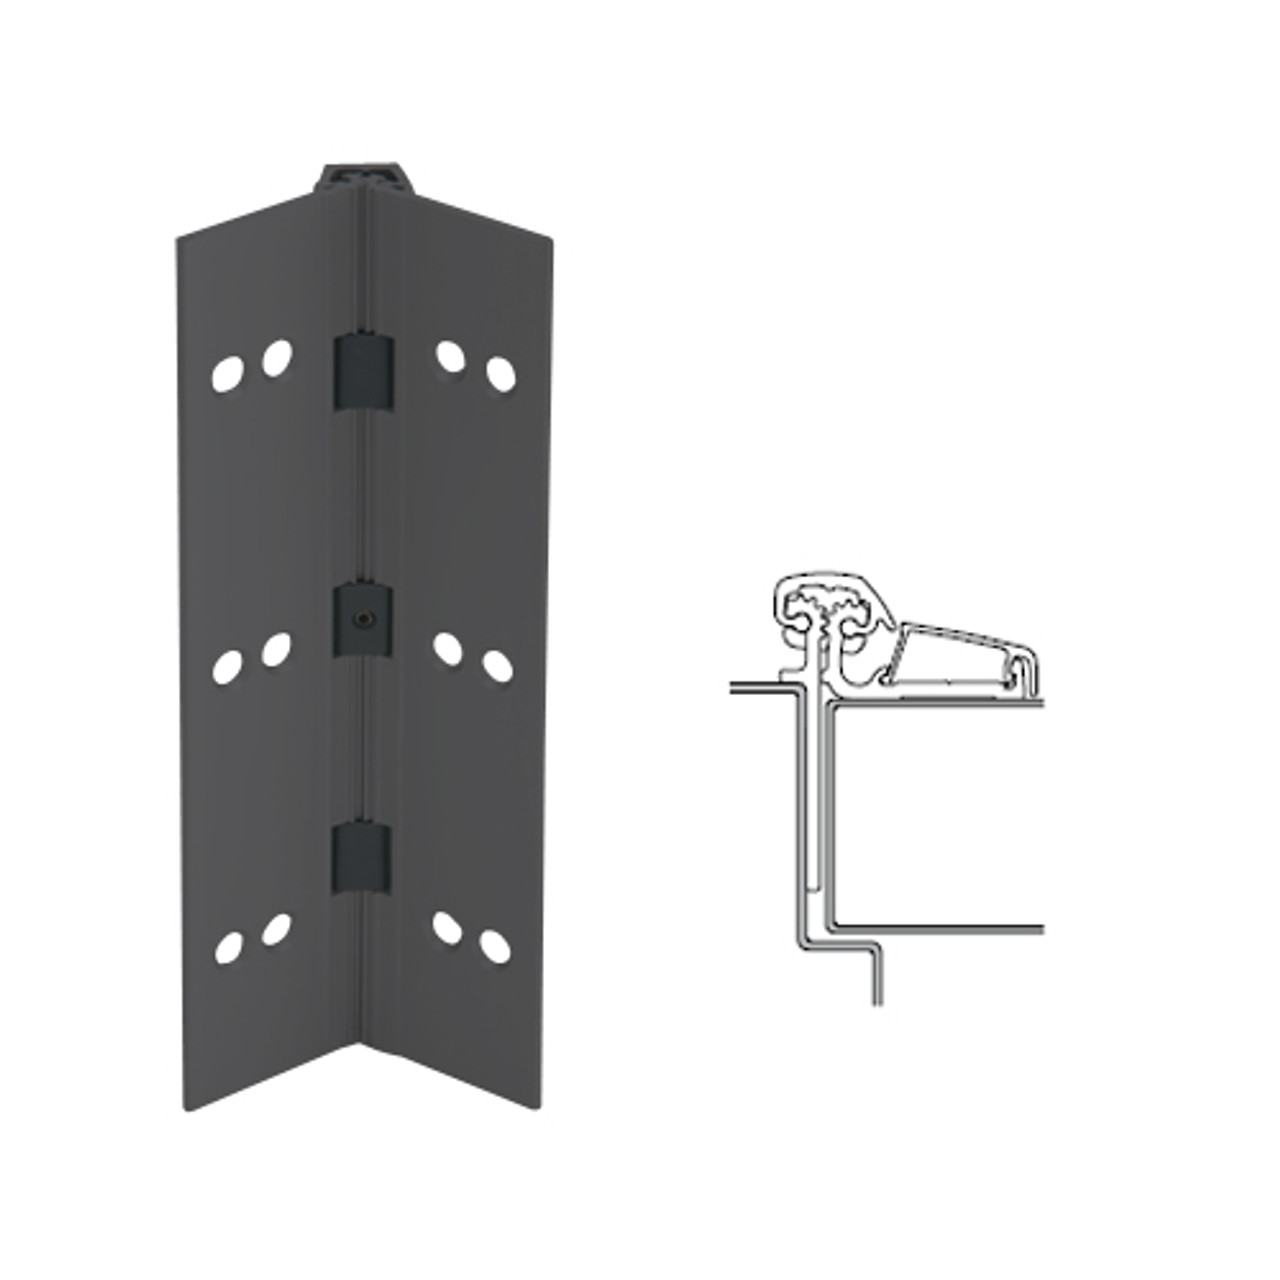 053XY-315AN-85-WD IVES Adjustable Half Surface Continuous Geared Hinges with Wood Screws in Anodized Black